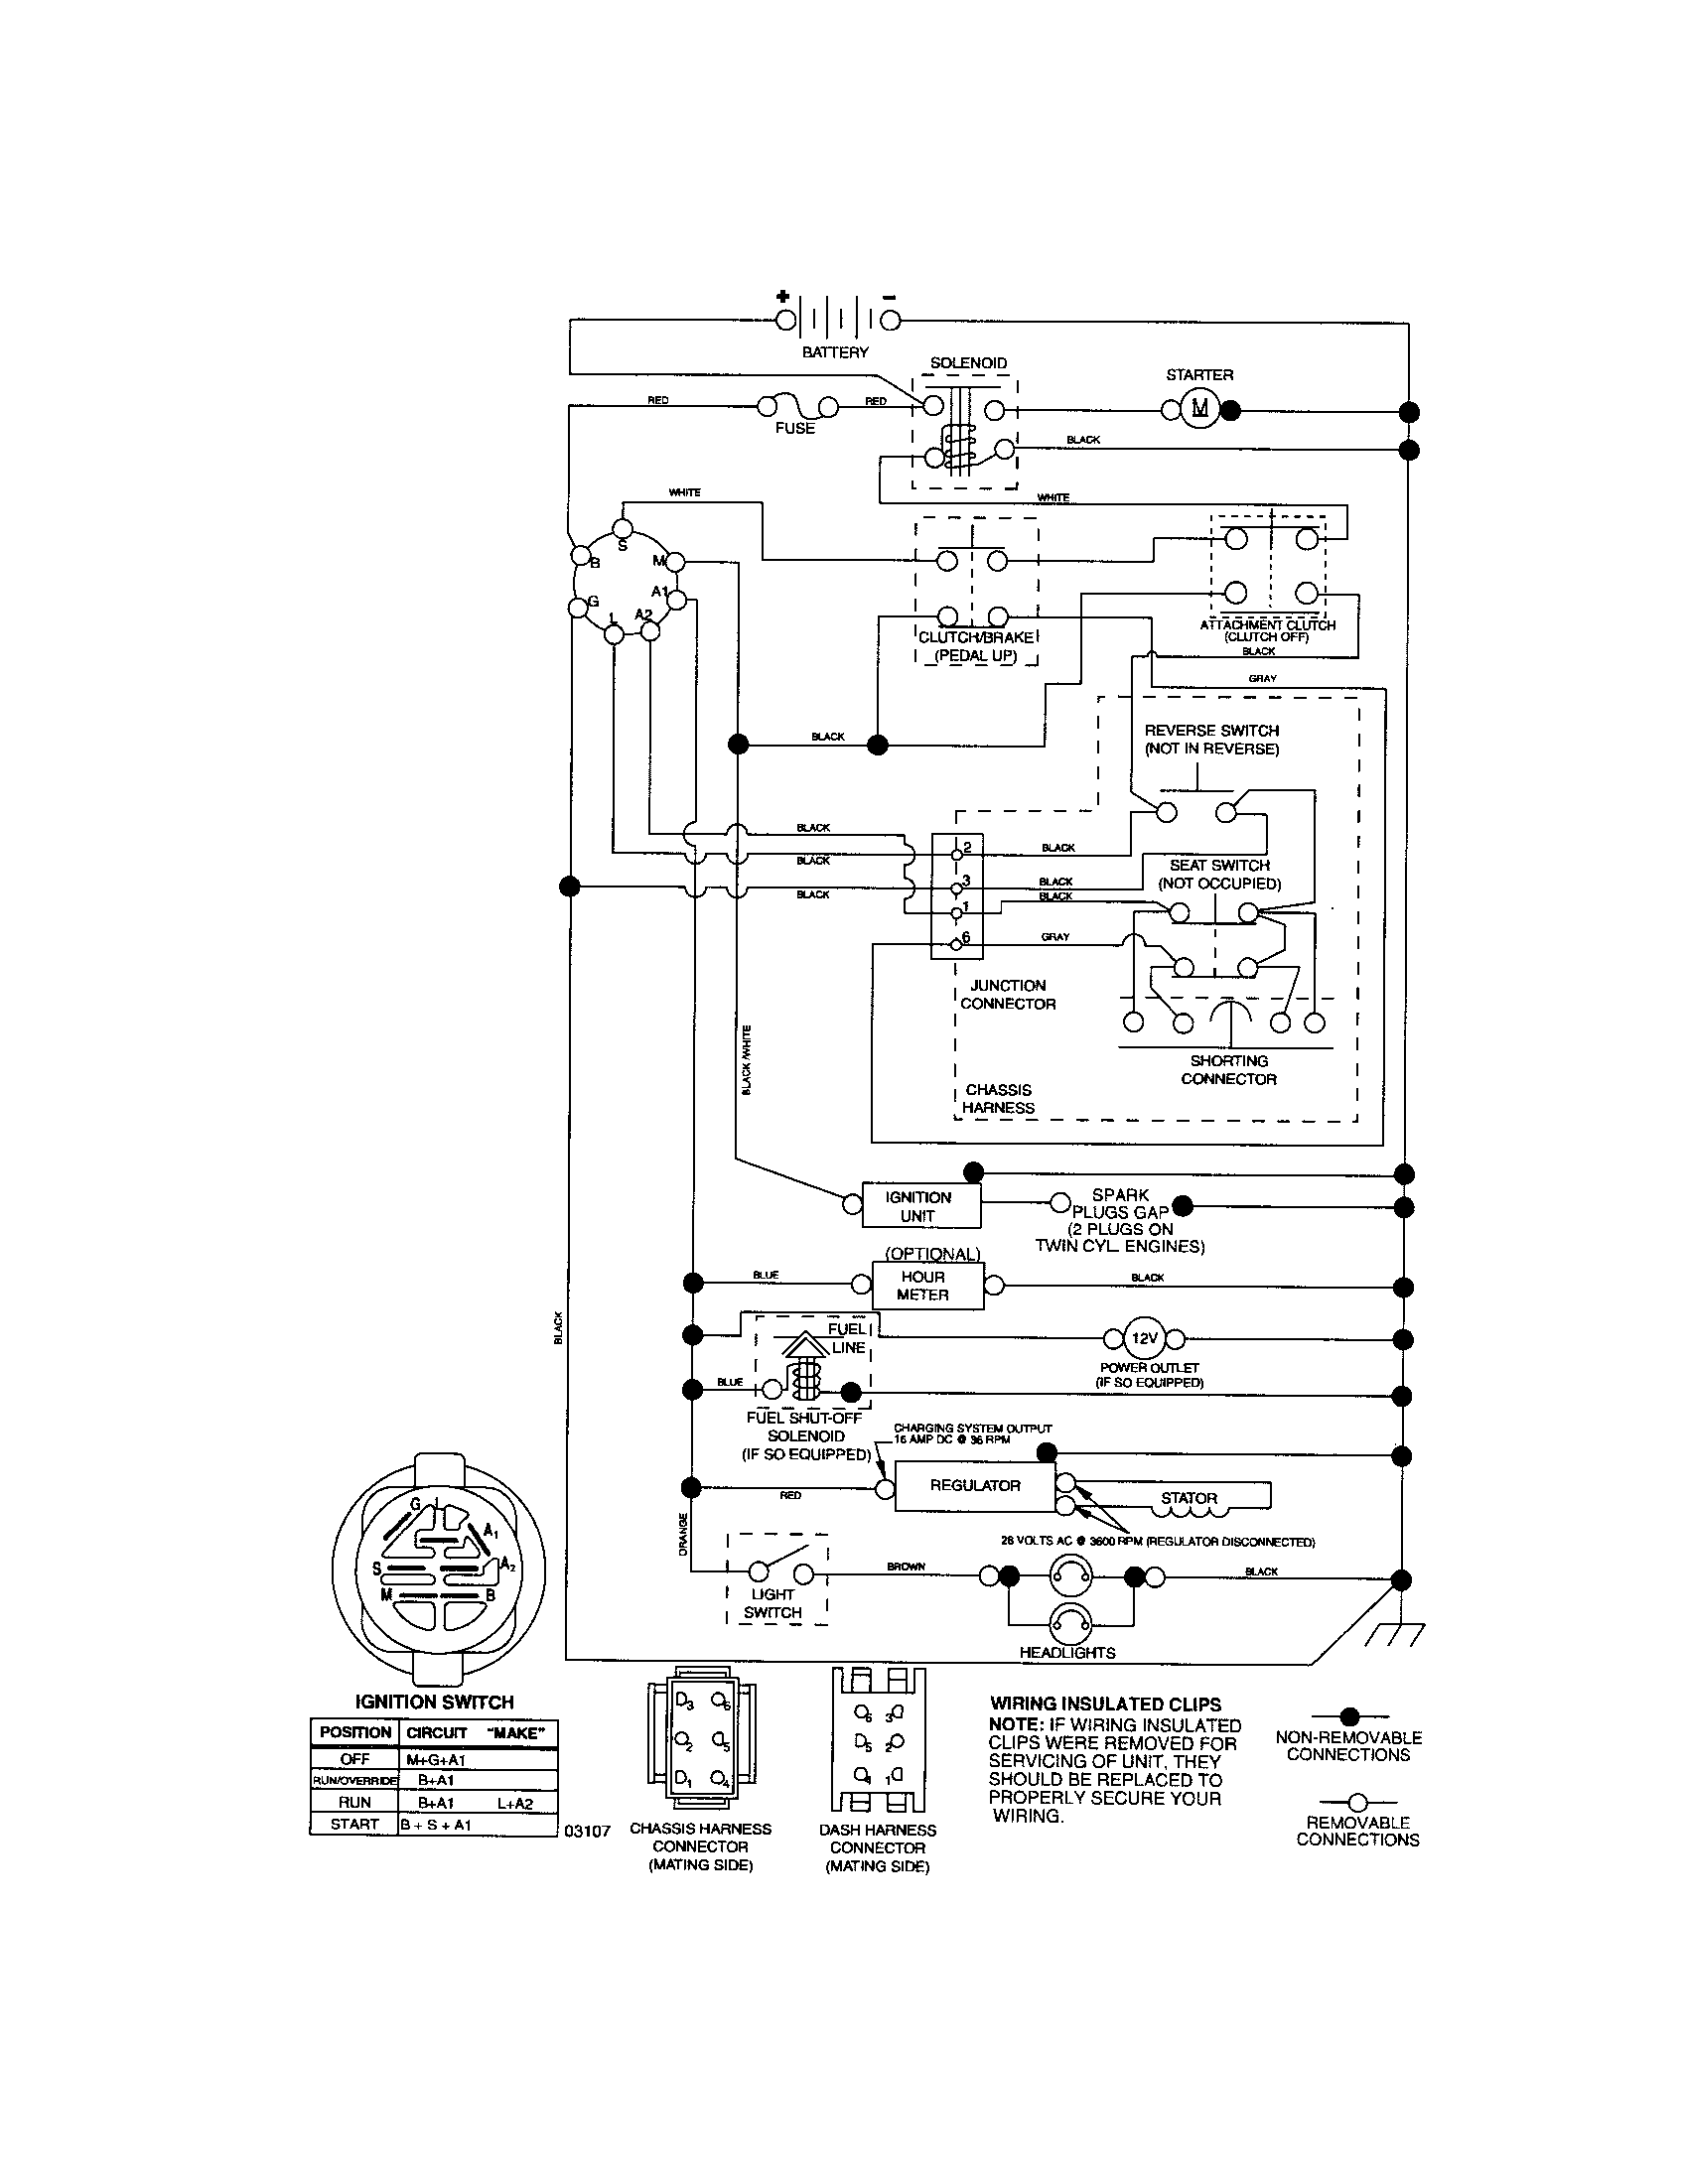 Sears Lt1000 Wiring Diagram Archive Of Automotive Diagrams Bose 901 Series Iv Craftsman Riding Mower Electrical Simple Rh David Huggett Co Uk Ignition